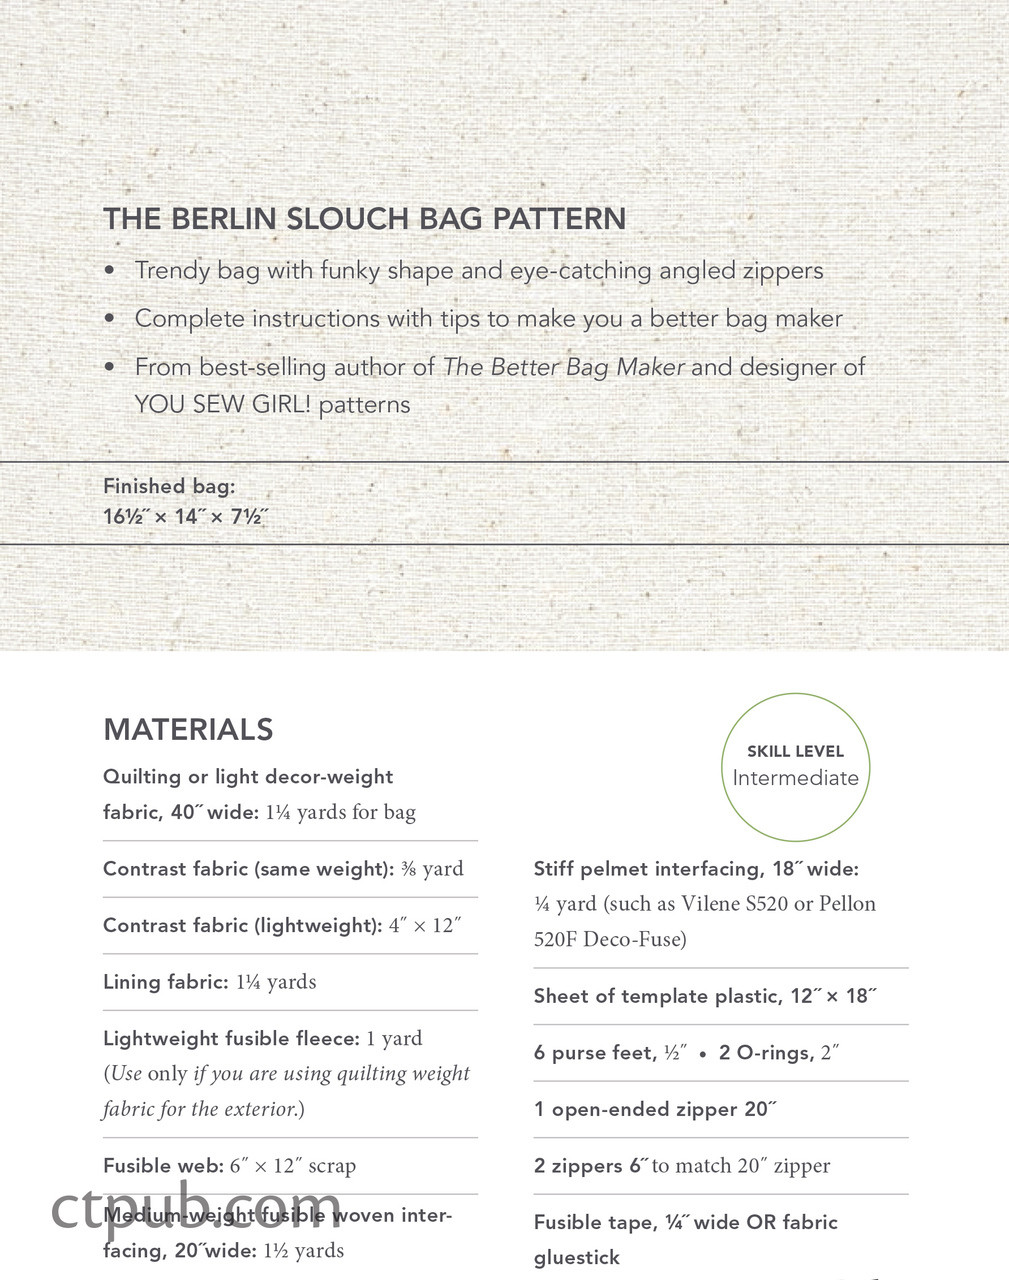 The Berlin Slouch Bag Pattern